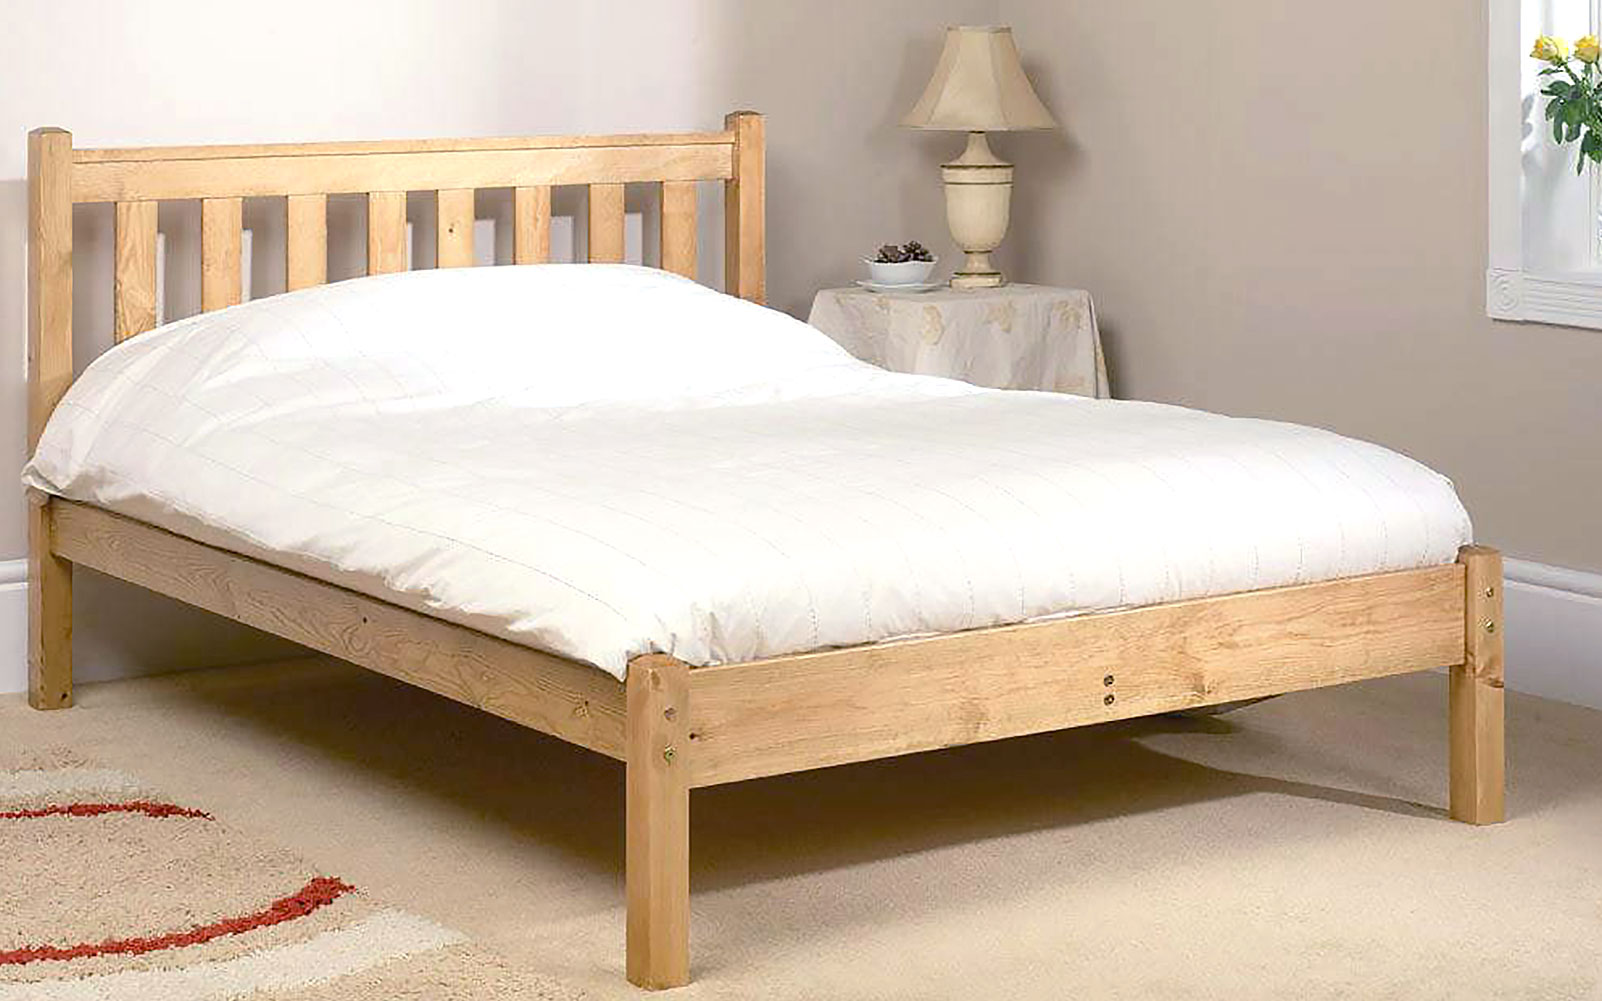 Beds and Mattresses: Standard, Custom and Record-Breaking!